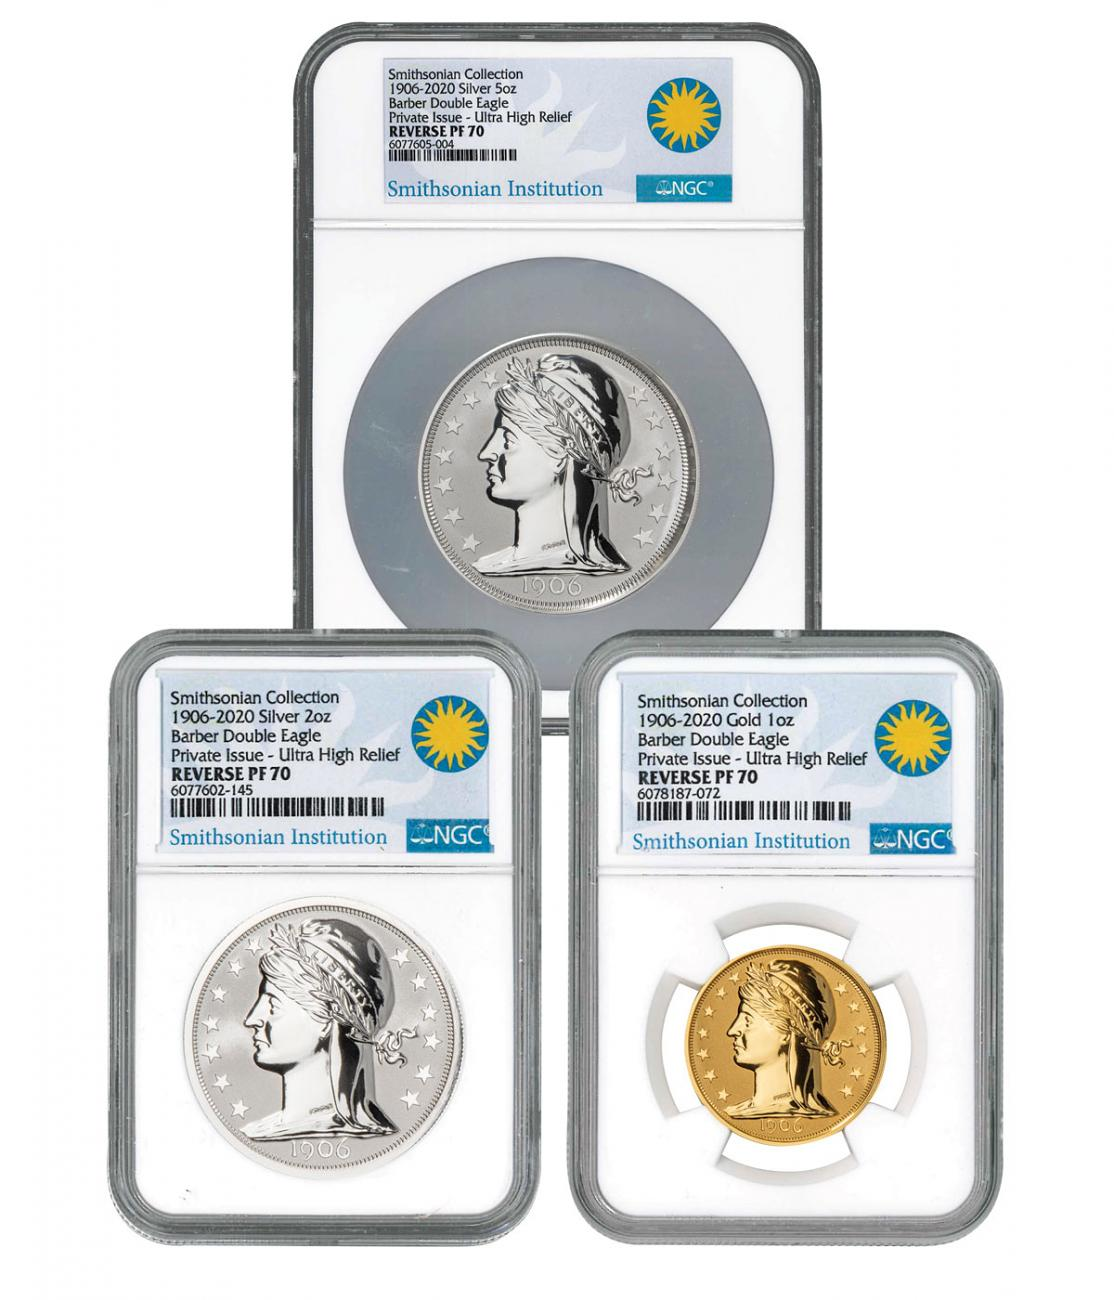 3-Piece Set - 2020 Silver/Gold Barber Double Eagle UHR Reverse Proof Scarce and Unique Coin Division NGC PF70 UC